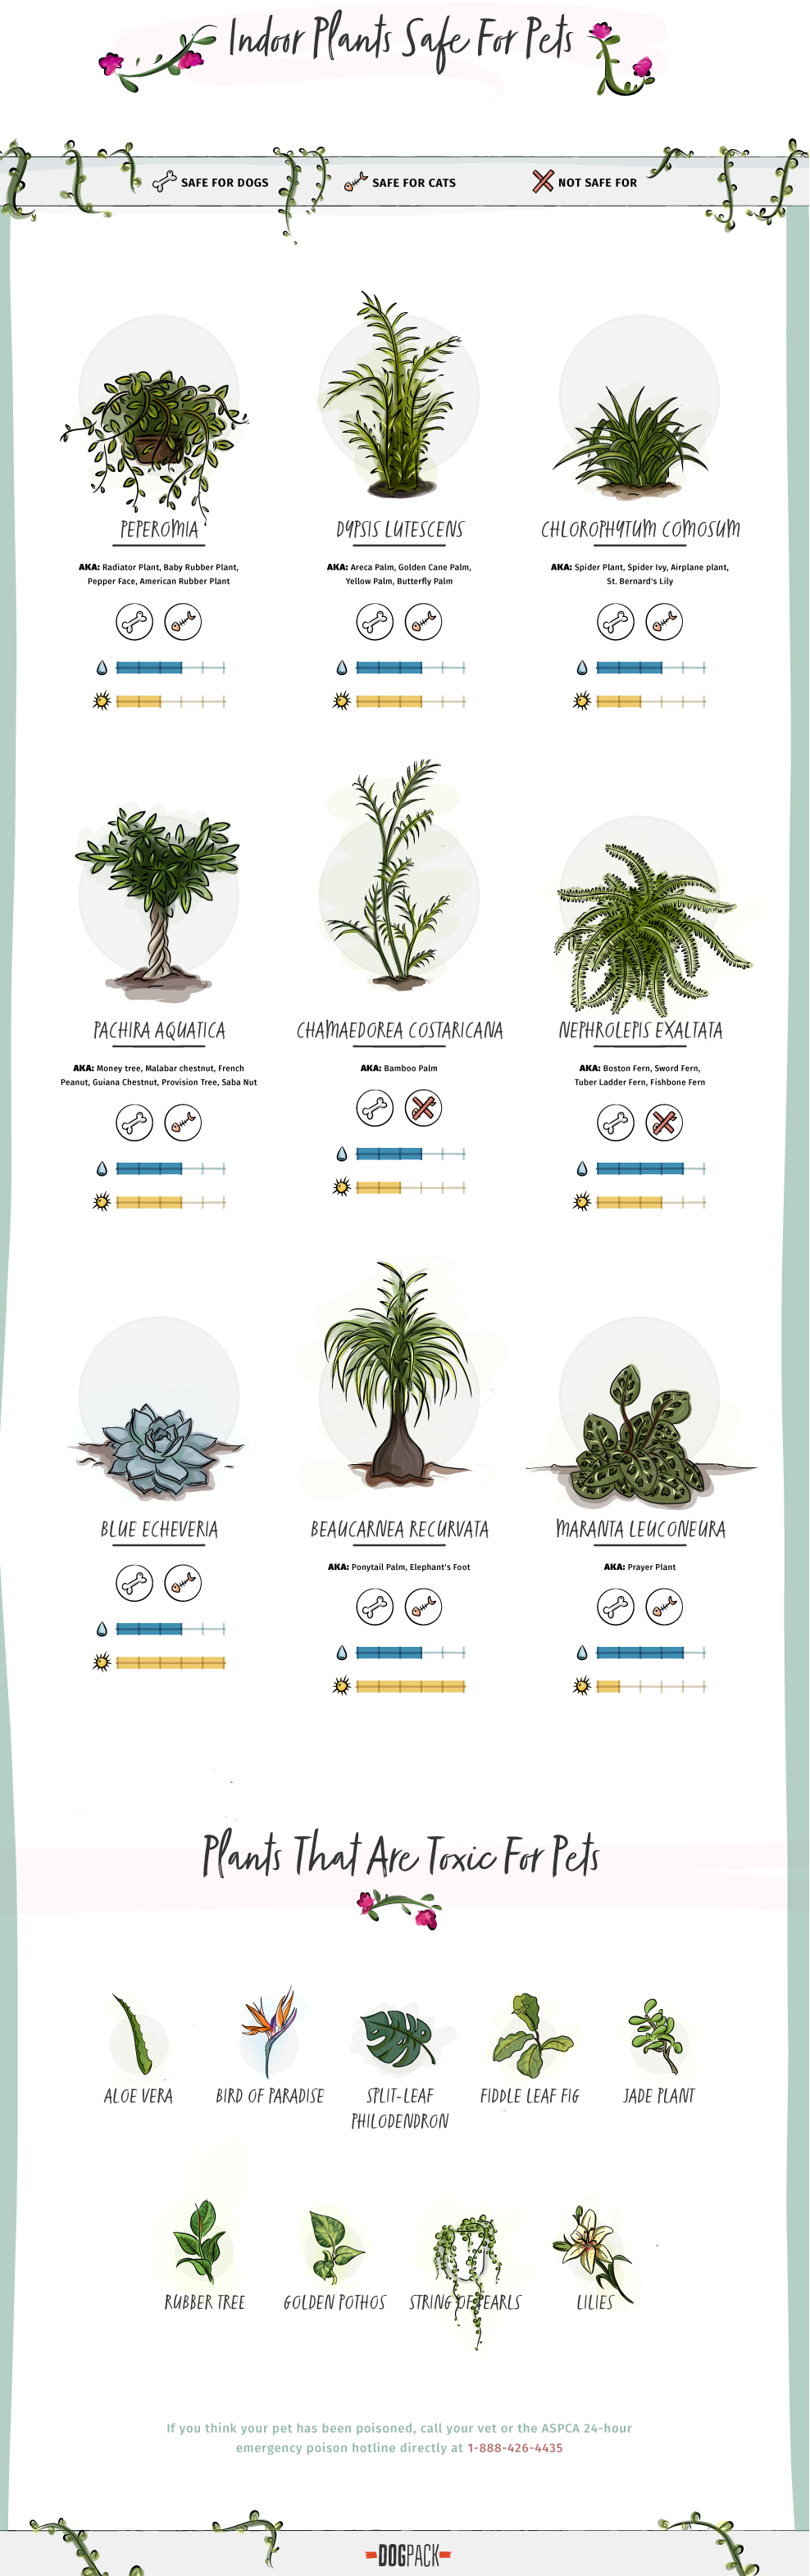 Pet Friendly Home Decor Tips Indoor Plants Safe For Pets And The Toxic Ones To Avoid Plants Poisonous Plants Indoor Plants